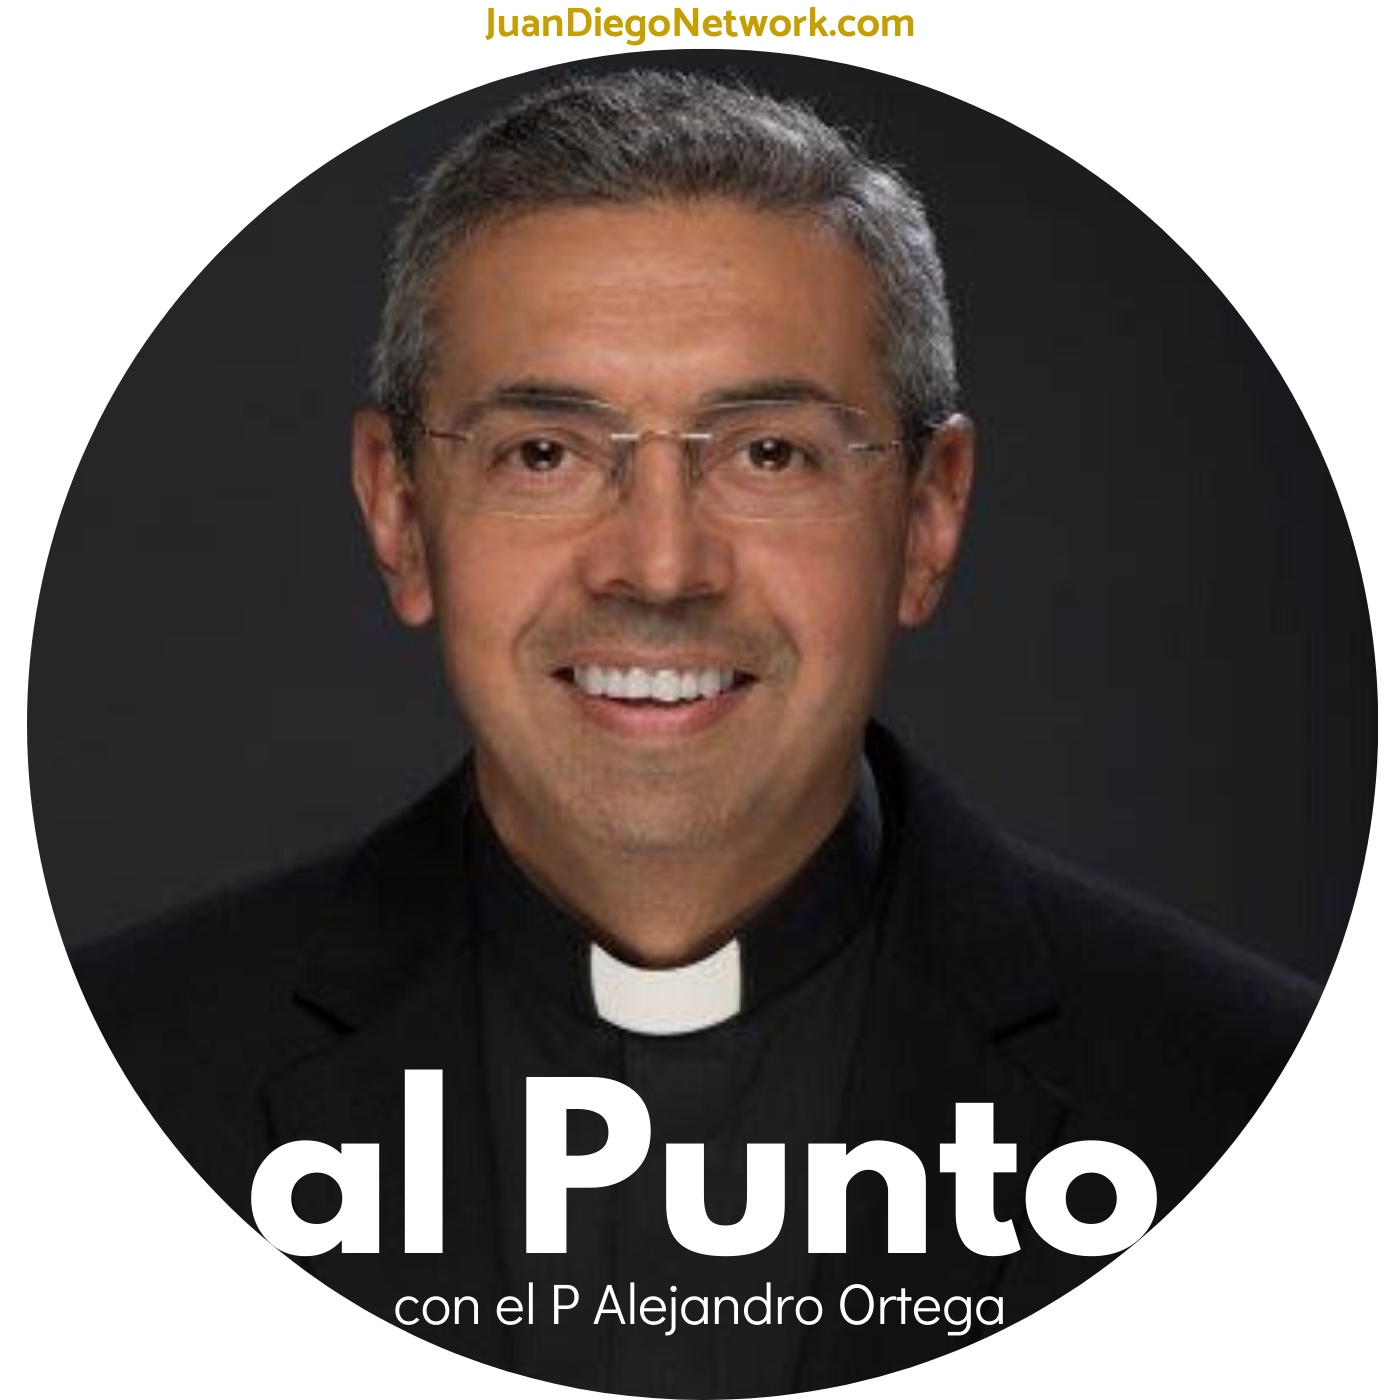 Show artwork for al Punto con el P Alejandro Ortega